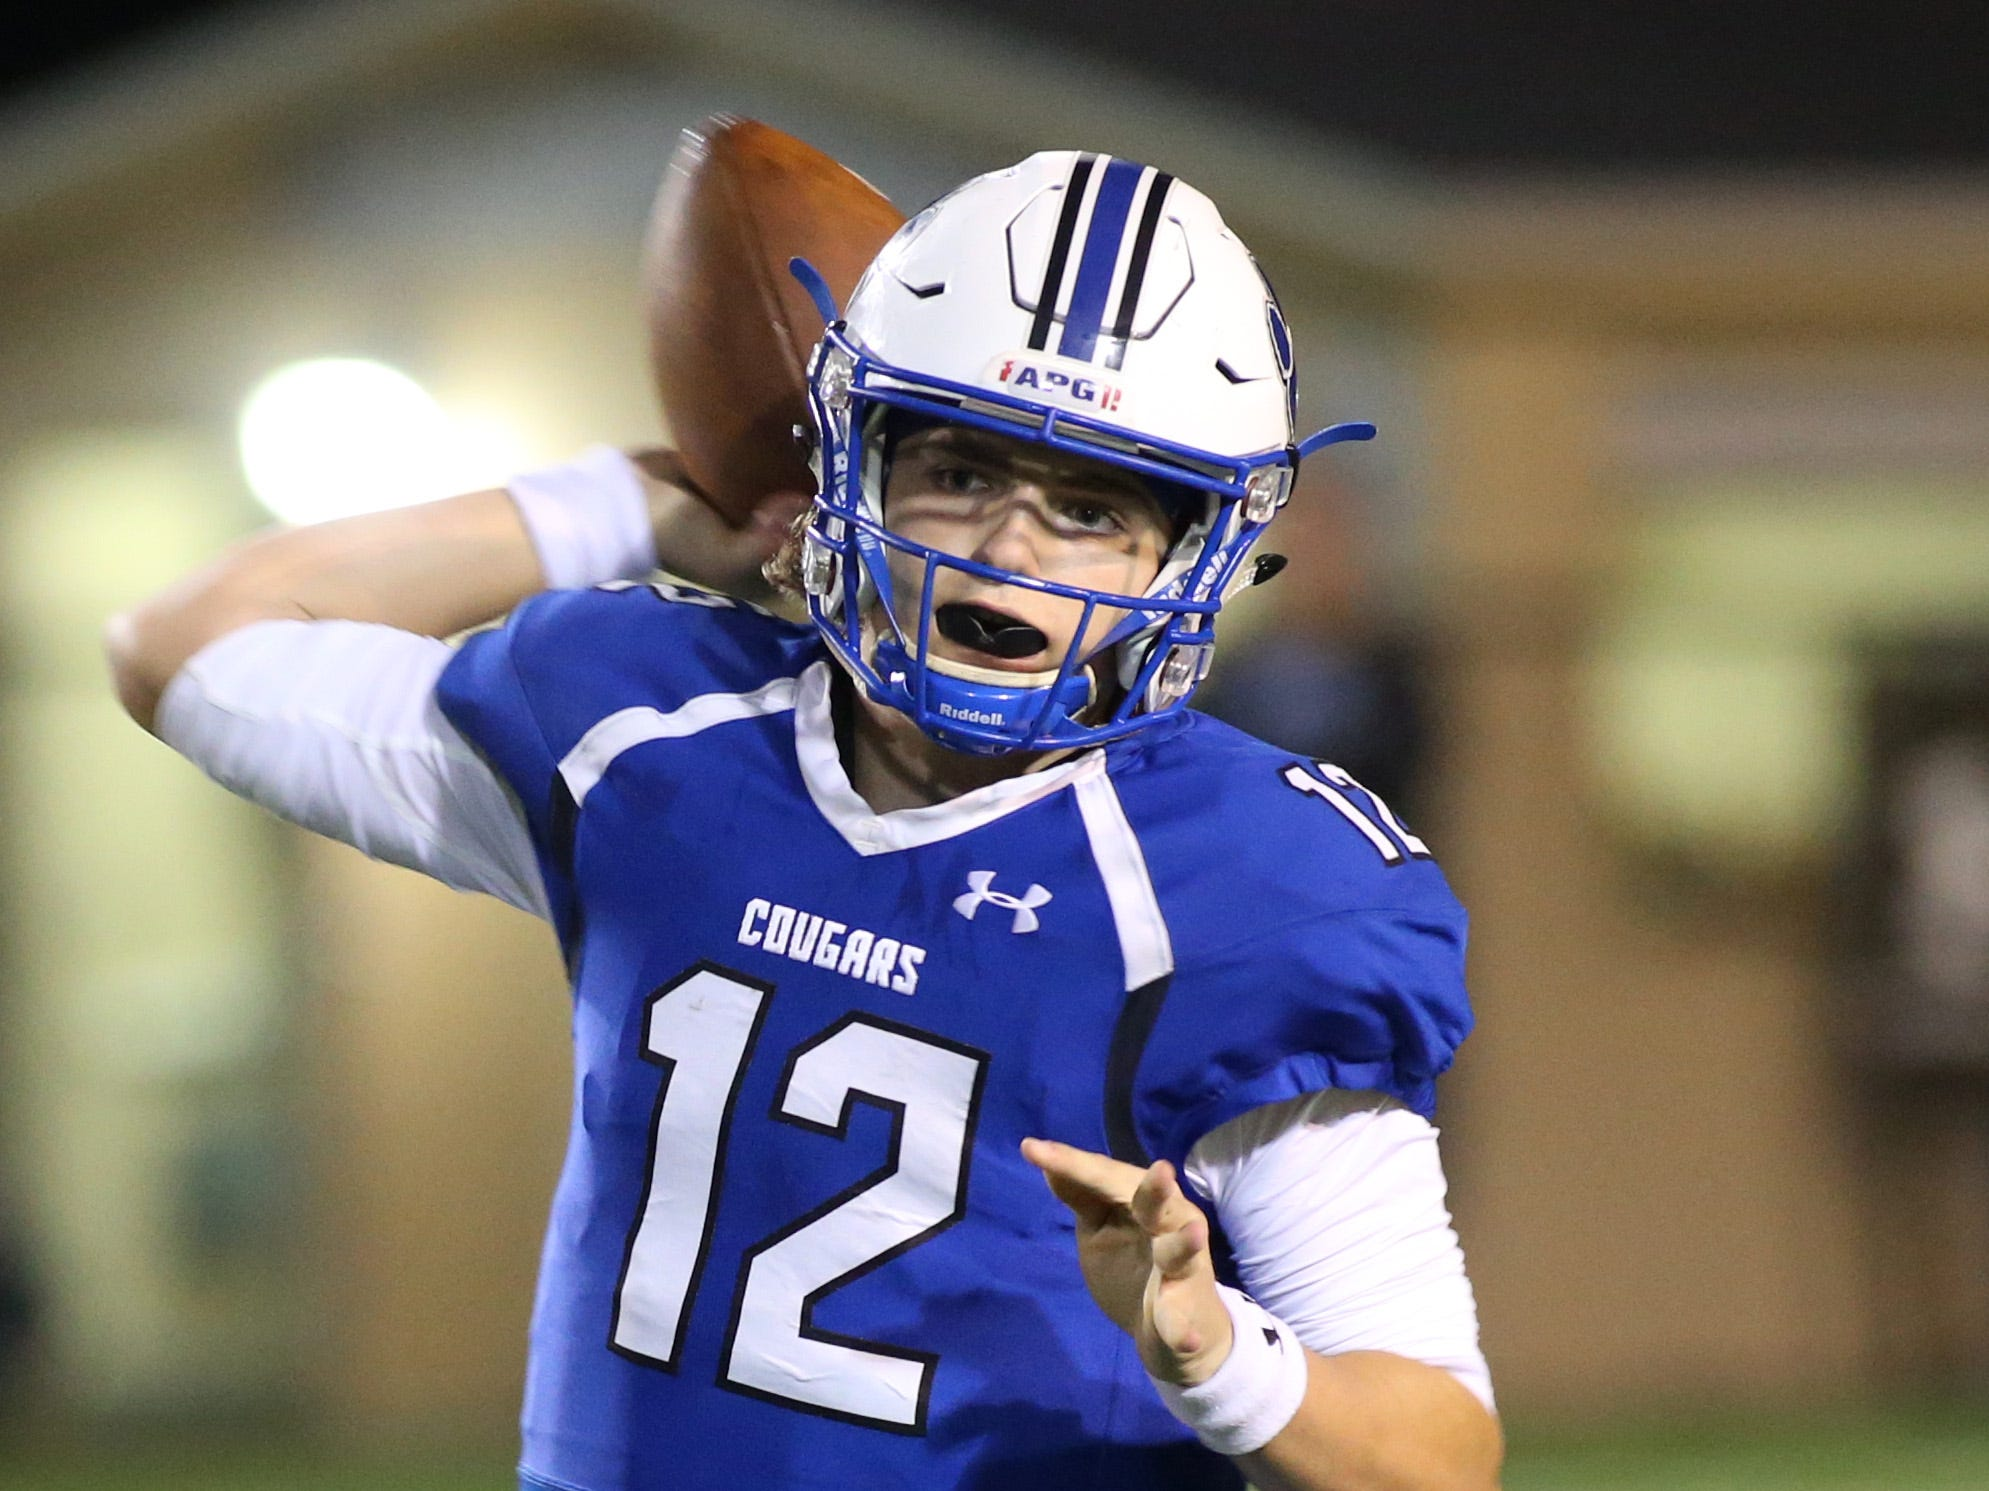 Godby quarterback, Trey Fisher (12) throws the ball to an open player as the Ponte Vedra Sharks face off against the Godby Cougars, in the Region 1-5A quarterfinal high school football playoff game at Gene Cox Stadium, Friday, Nov. 9, 2018.